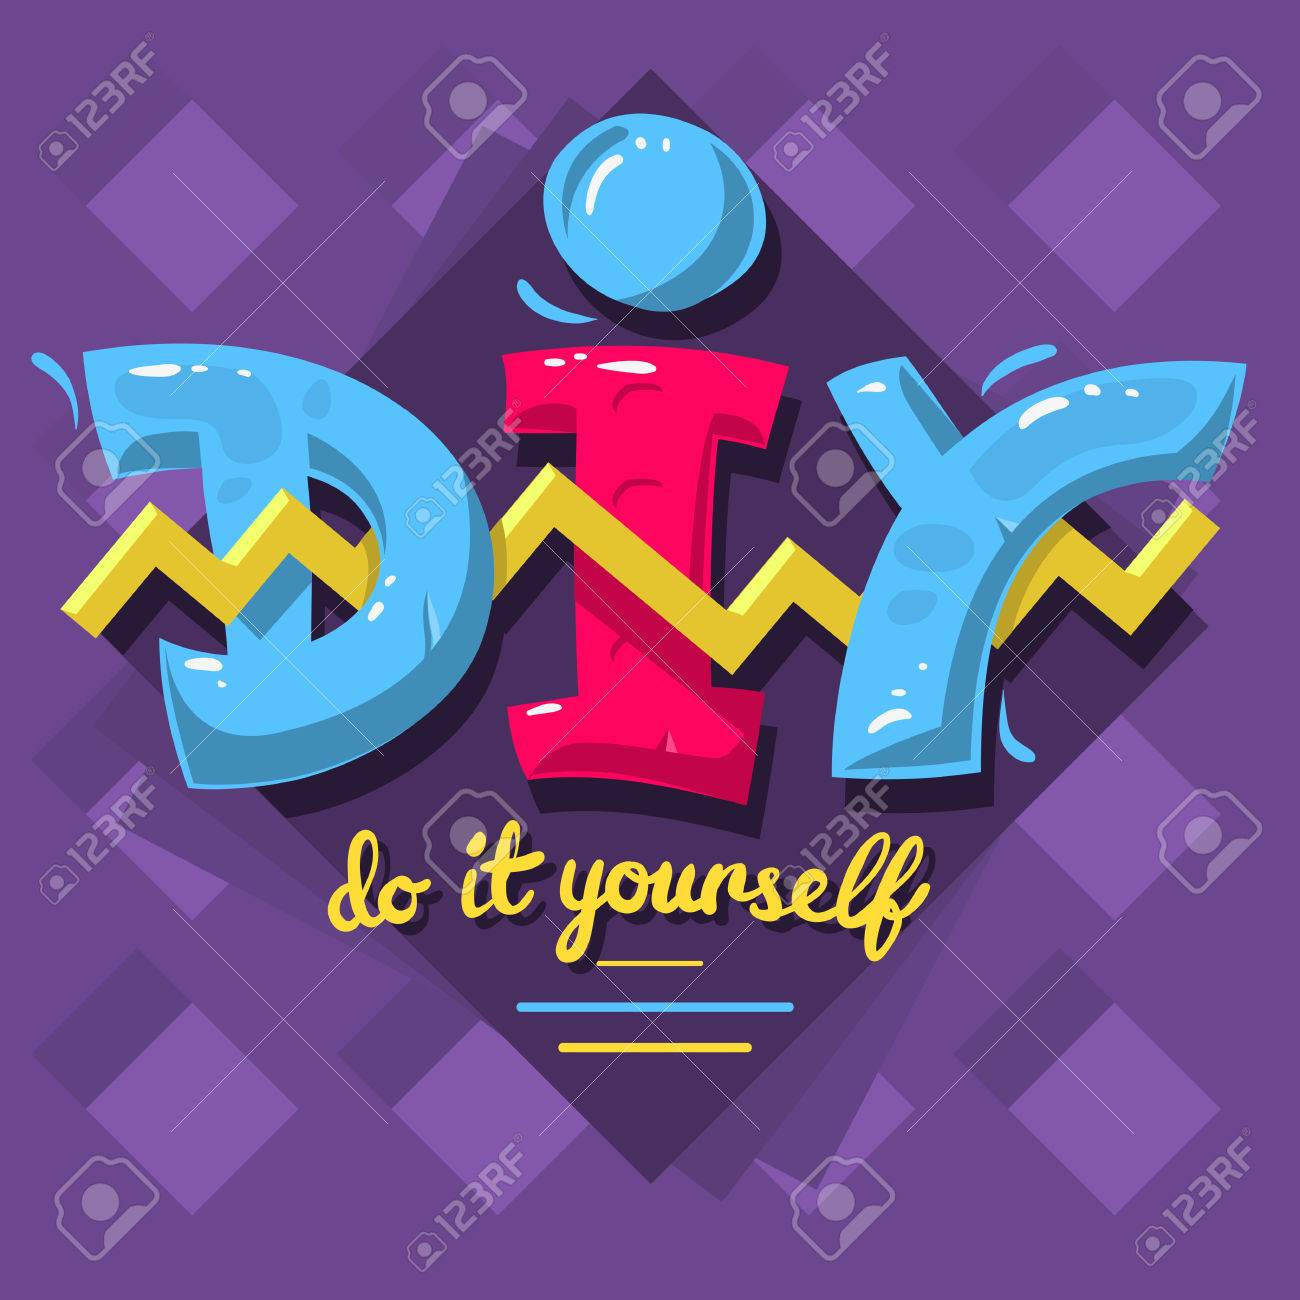 Diy acronym do it yourself 90 s vibrant colors aesthetic typ diy acronym do it yourself 90 s vibrant colors aesthetic typ stock vector solutioingenieria Images